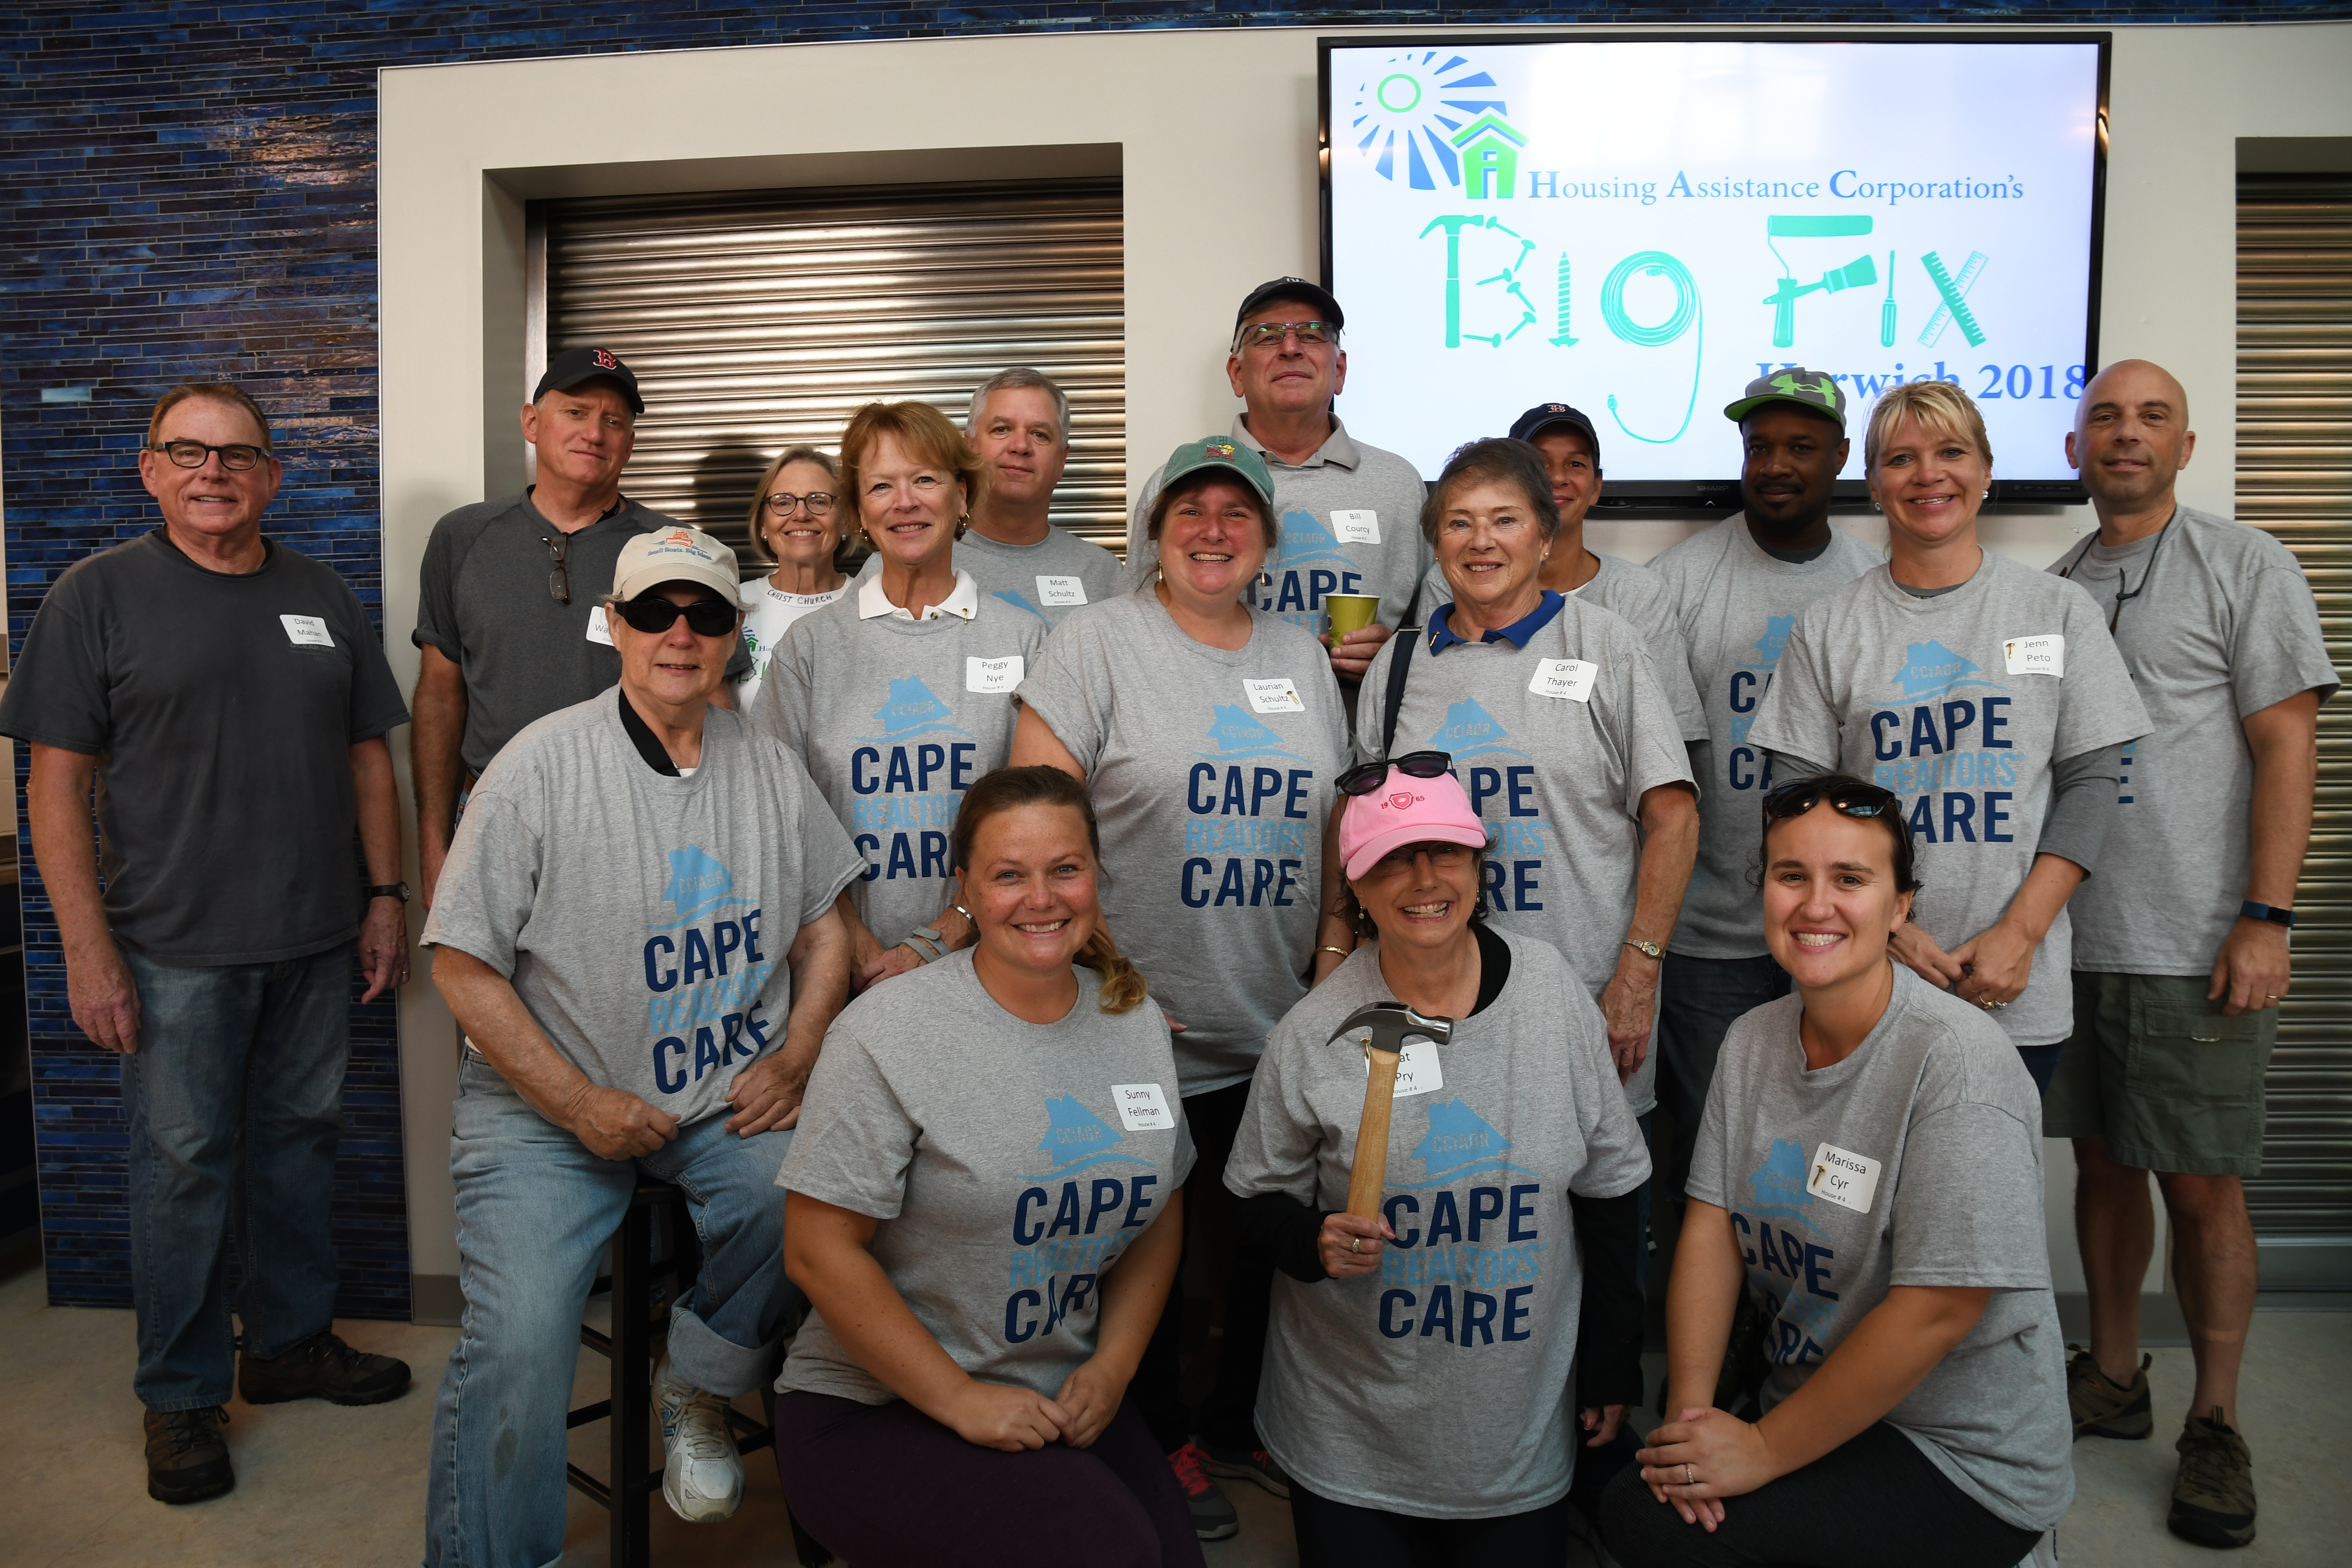 Cape Realtors Care Photo